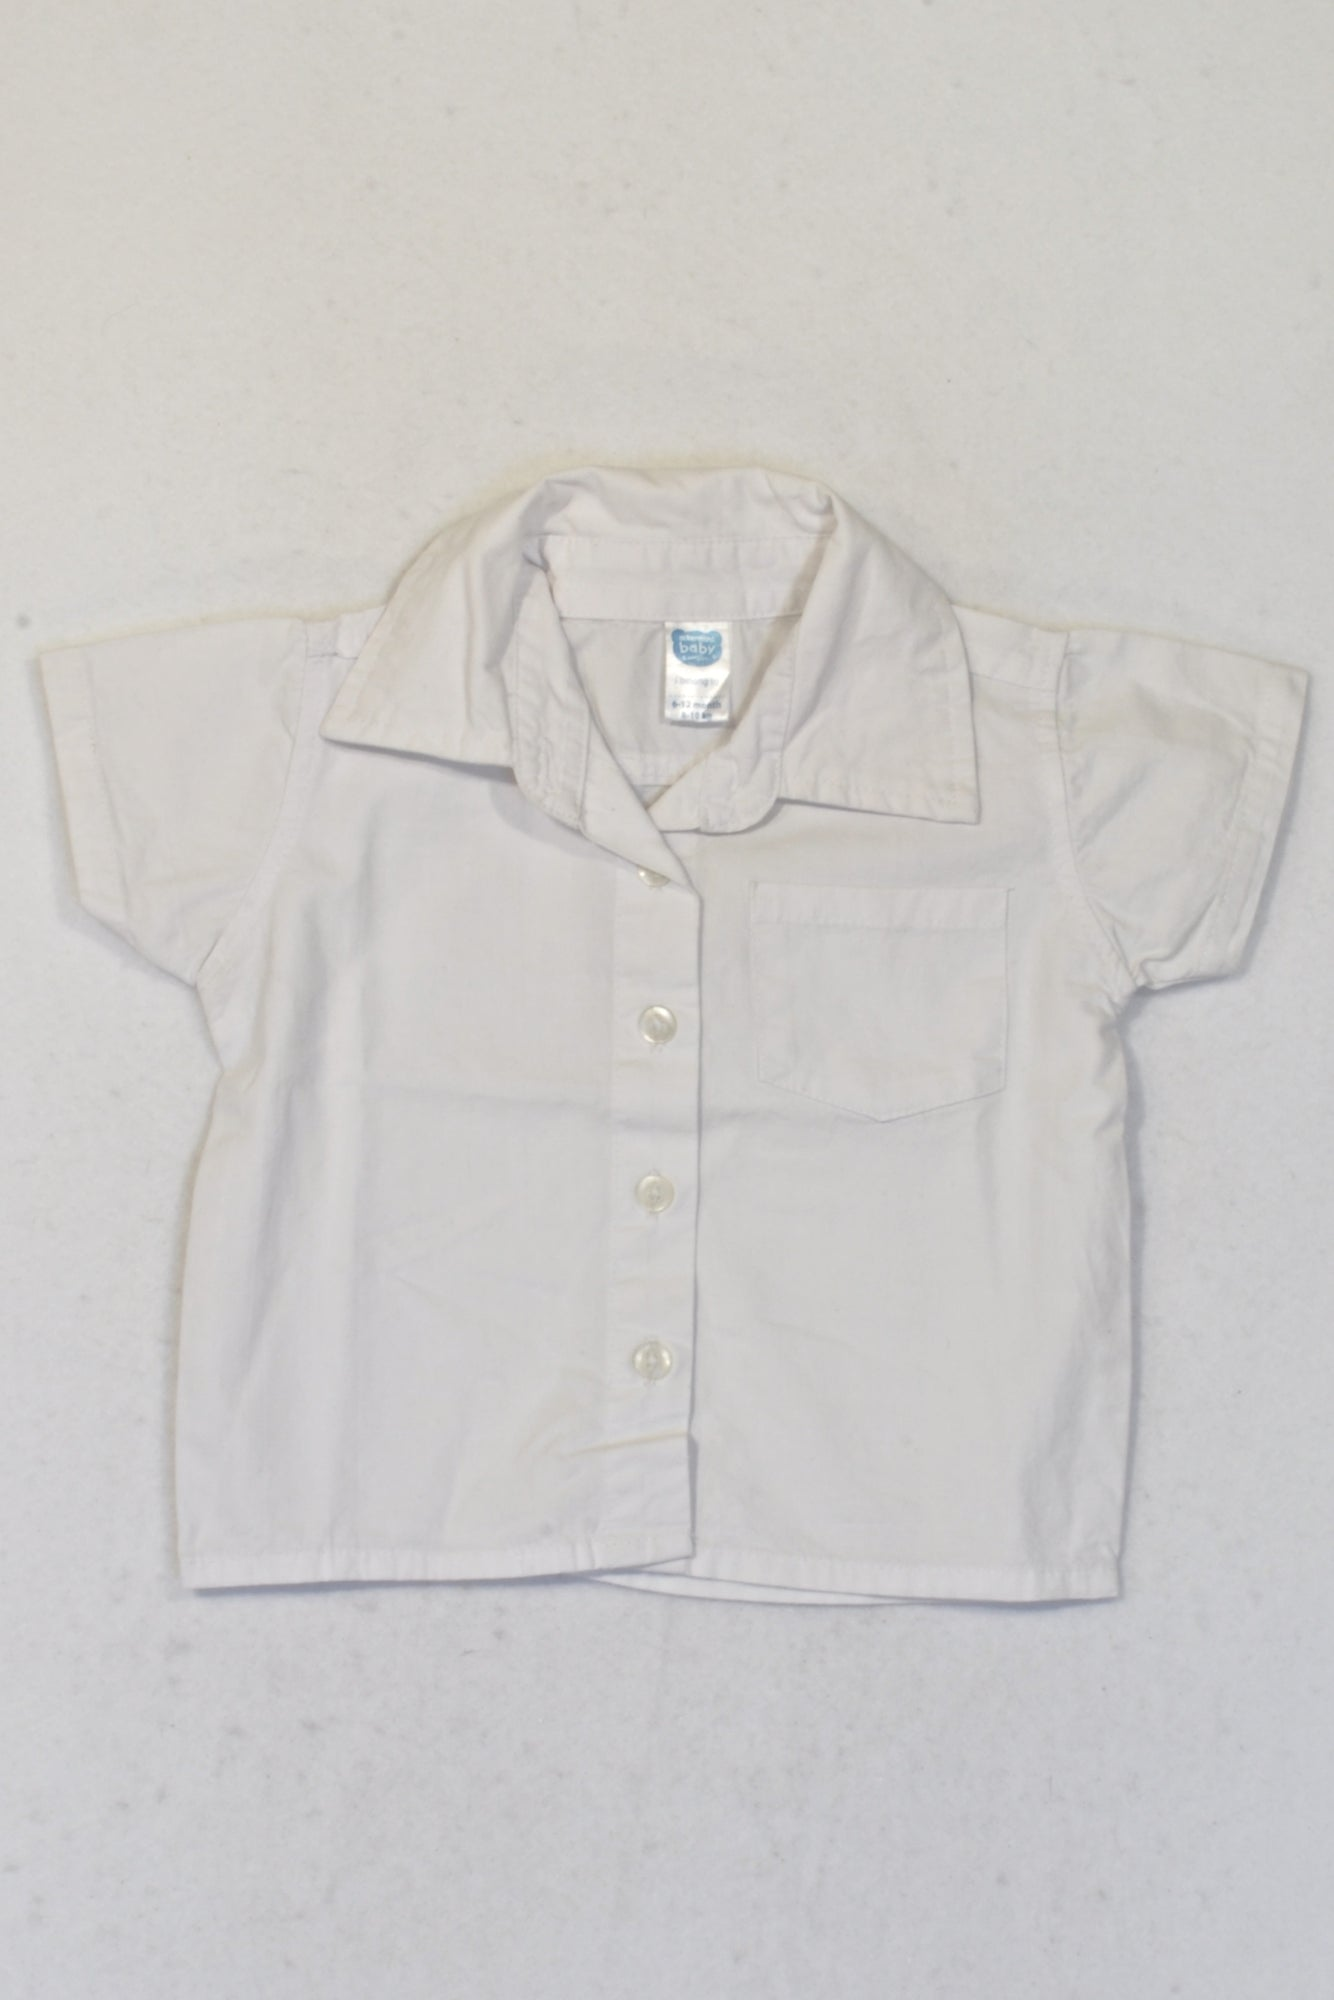 Ackermans White Short Sleeve Collared Shirt Boys 6-12 months